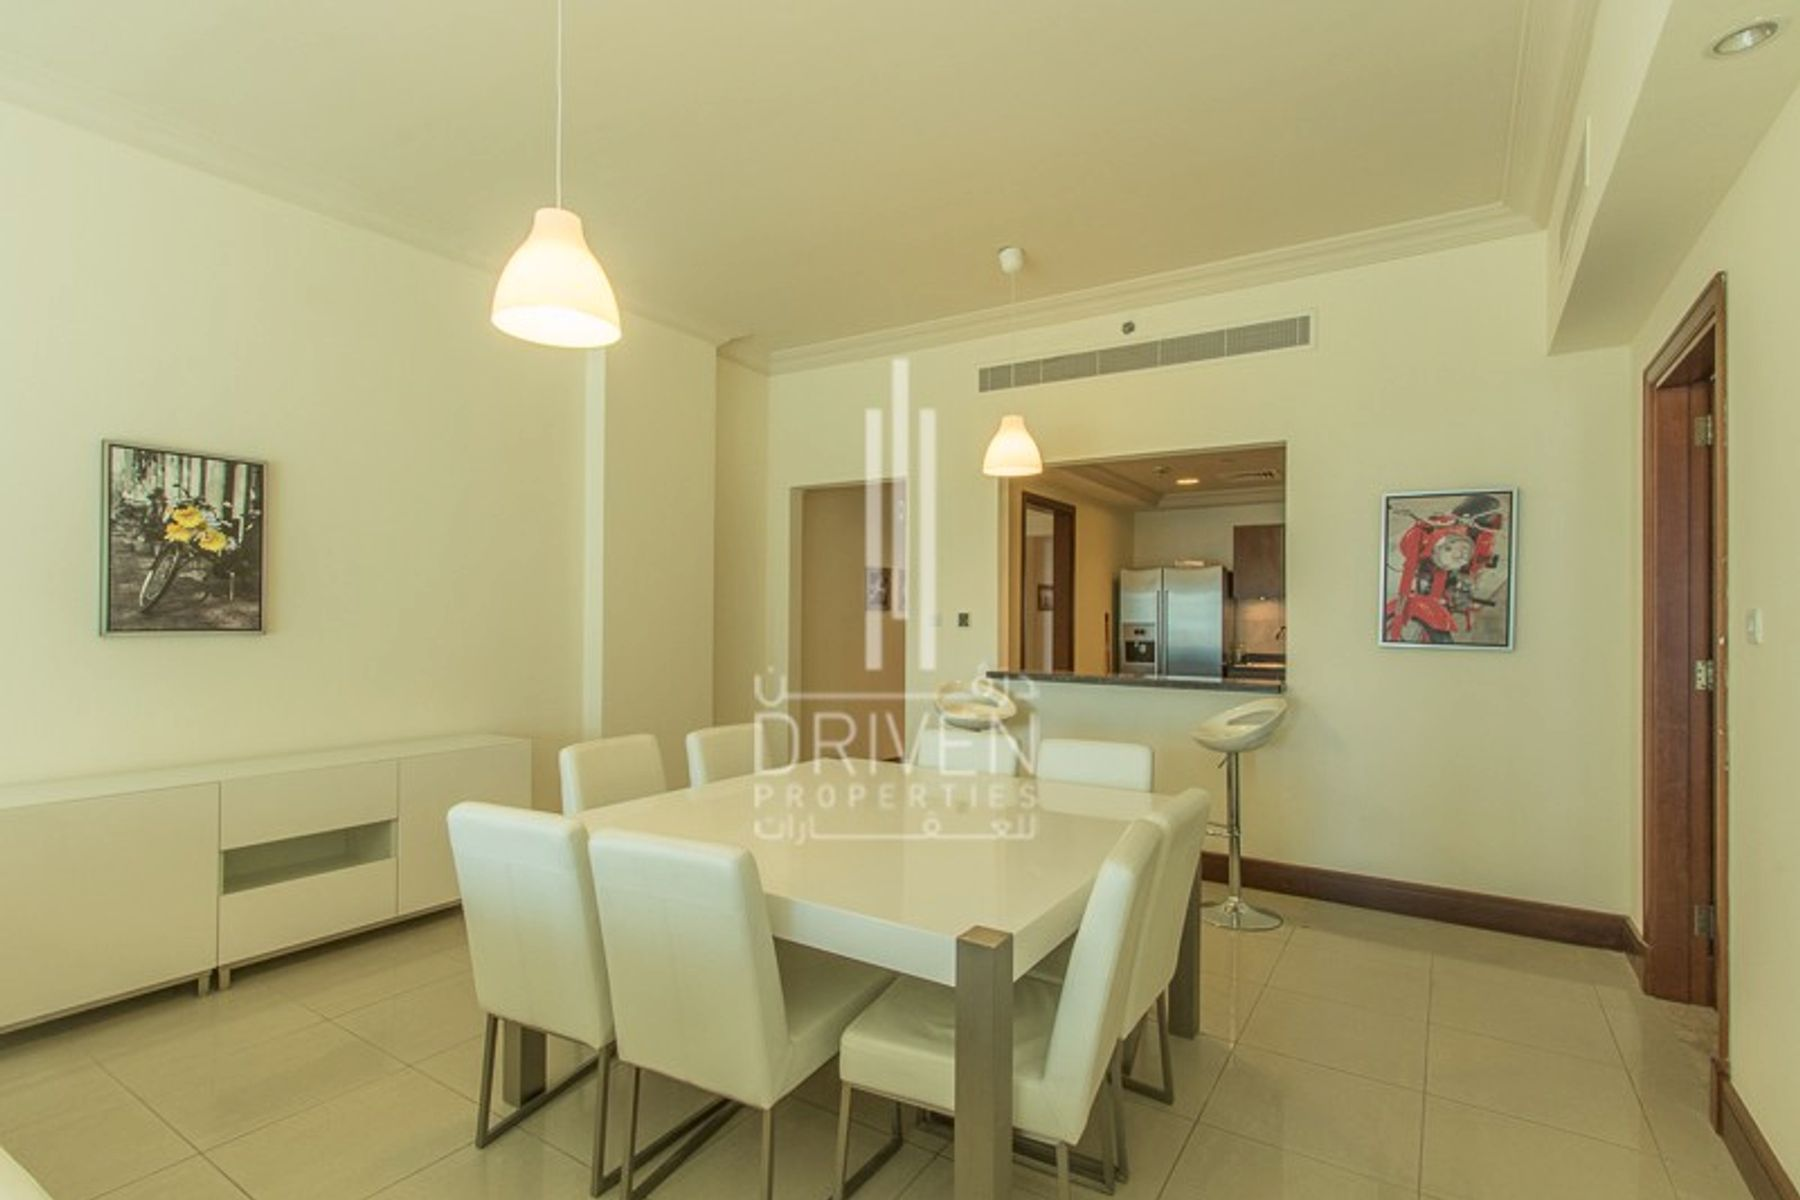 Apartment for Sale in Golden Mile 1 - Palm Jumeirah